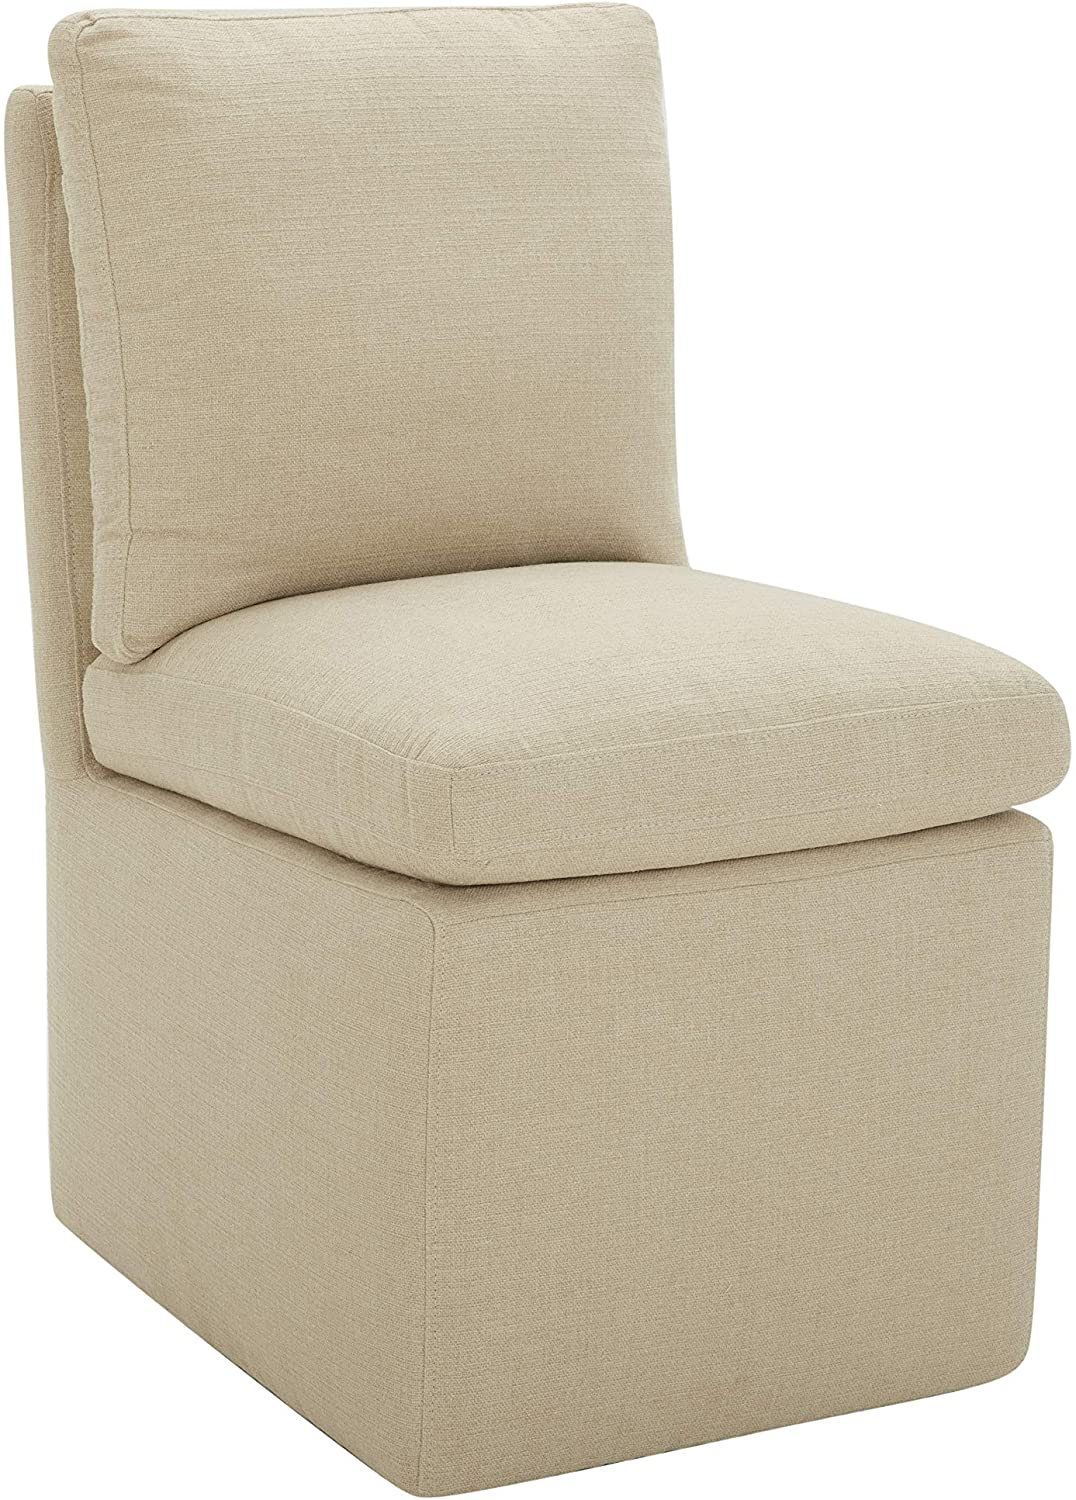 """Amazon Brand – Stone & Beam Vivianne Modern Upholstered Armless Dining Chair with Casters, 19.7""""W, Hemp"""